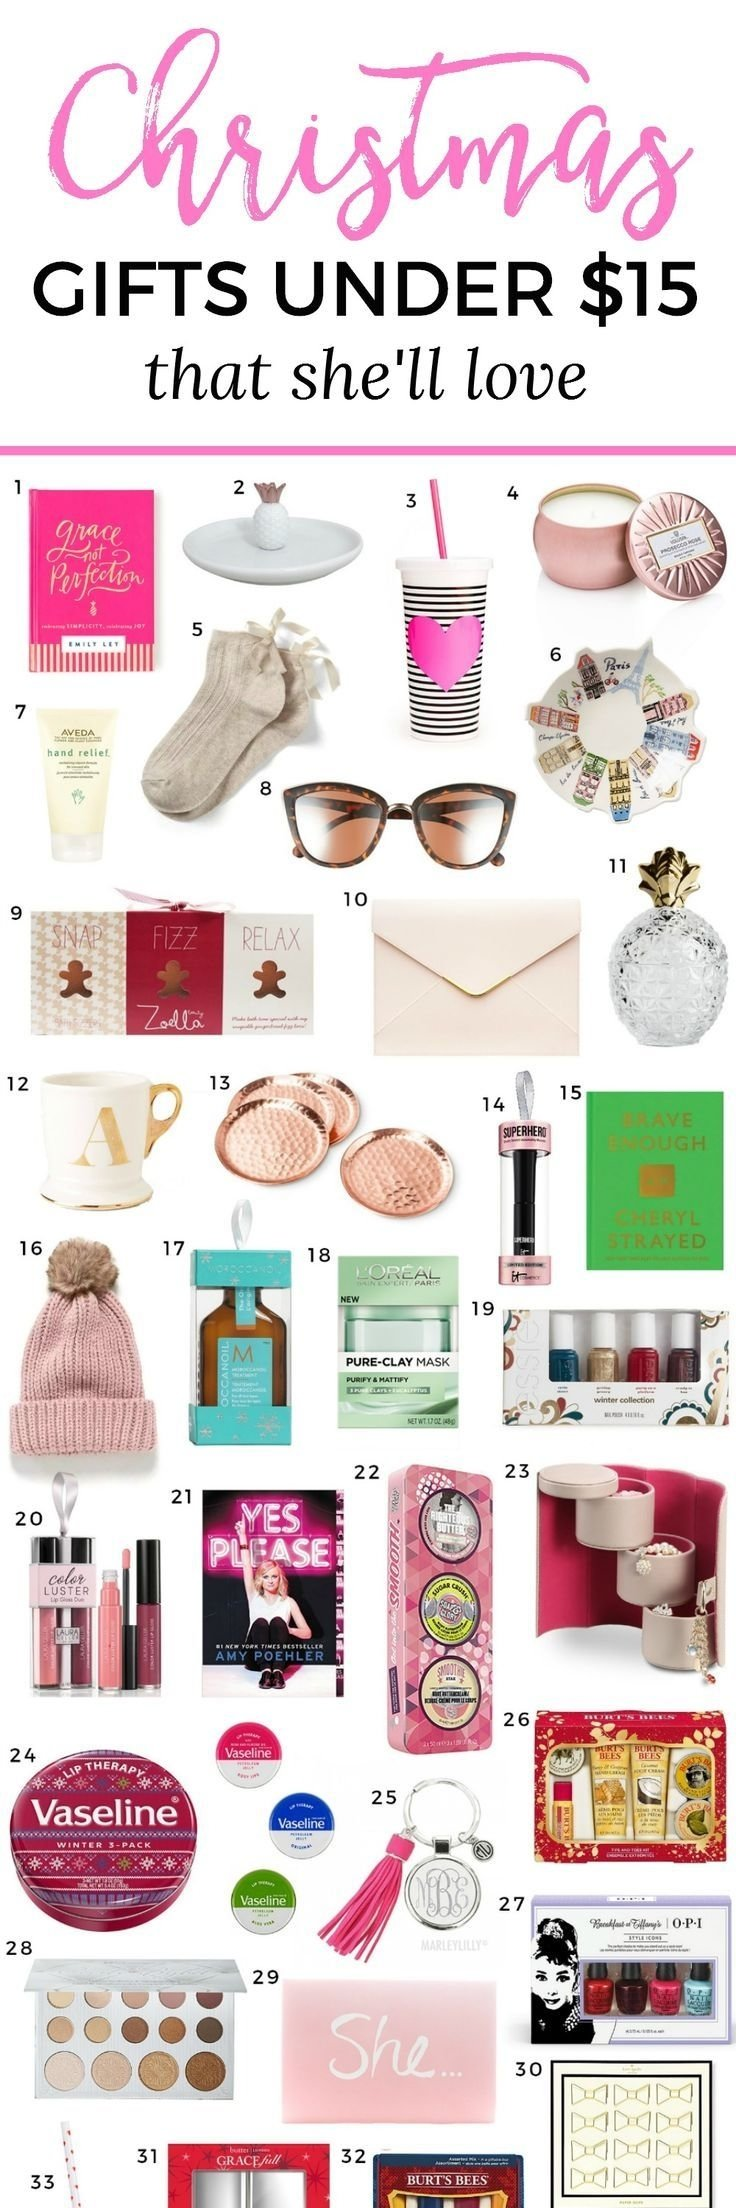 10 Awesome Good Ideas For Christmas Gifts 277 best gifts to give images on pinterest gift ideas creative